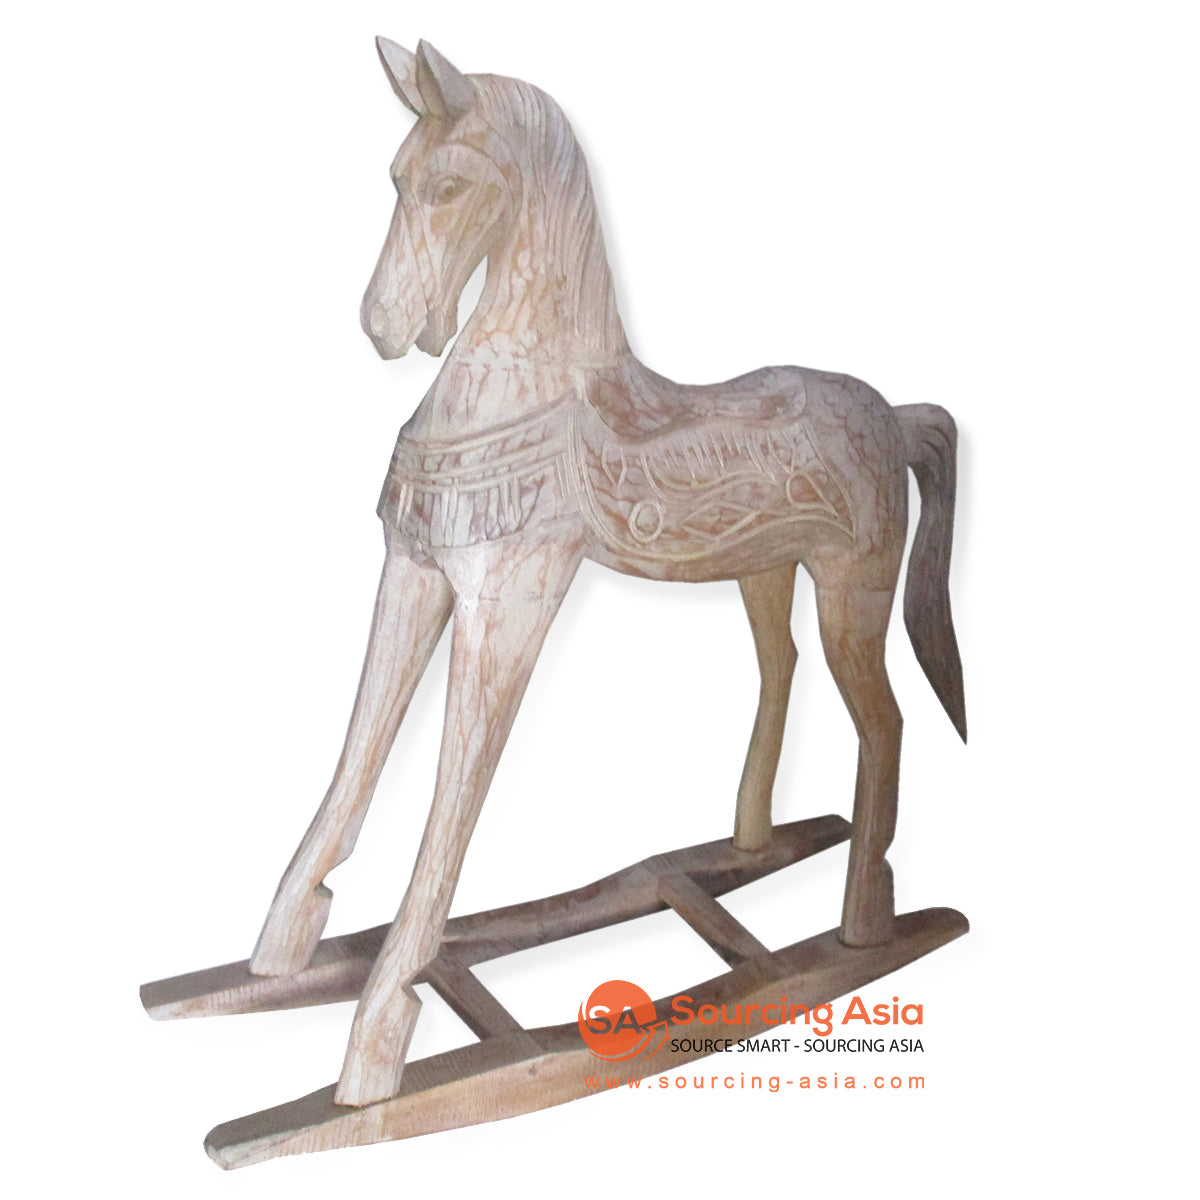 THE071-LBW HORSE STATUE